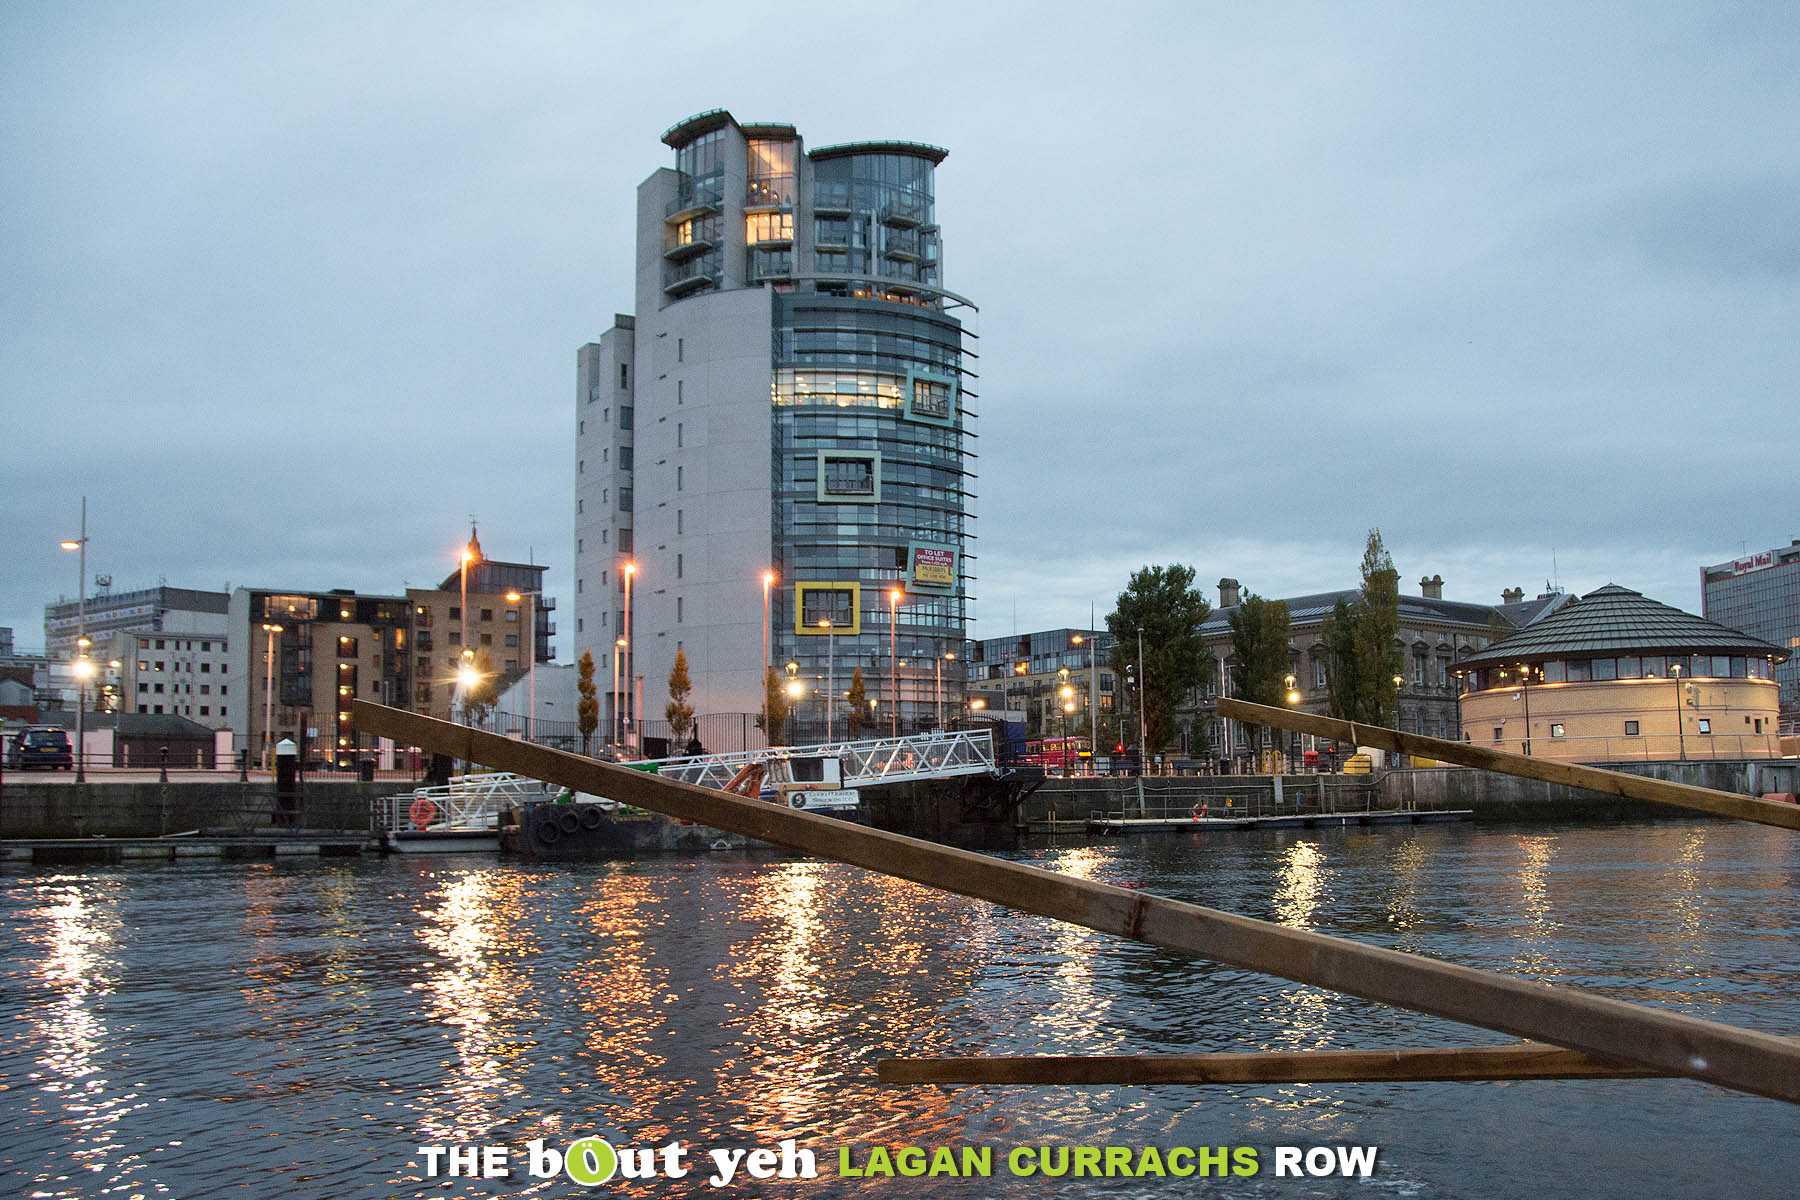 The Boat building, Belfast pictured from the River Lagan during the Bout Yeh Lagan Currachs row - photo 9265.